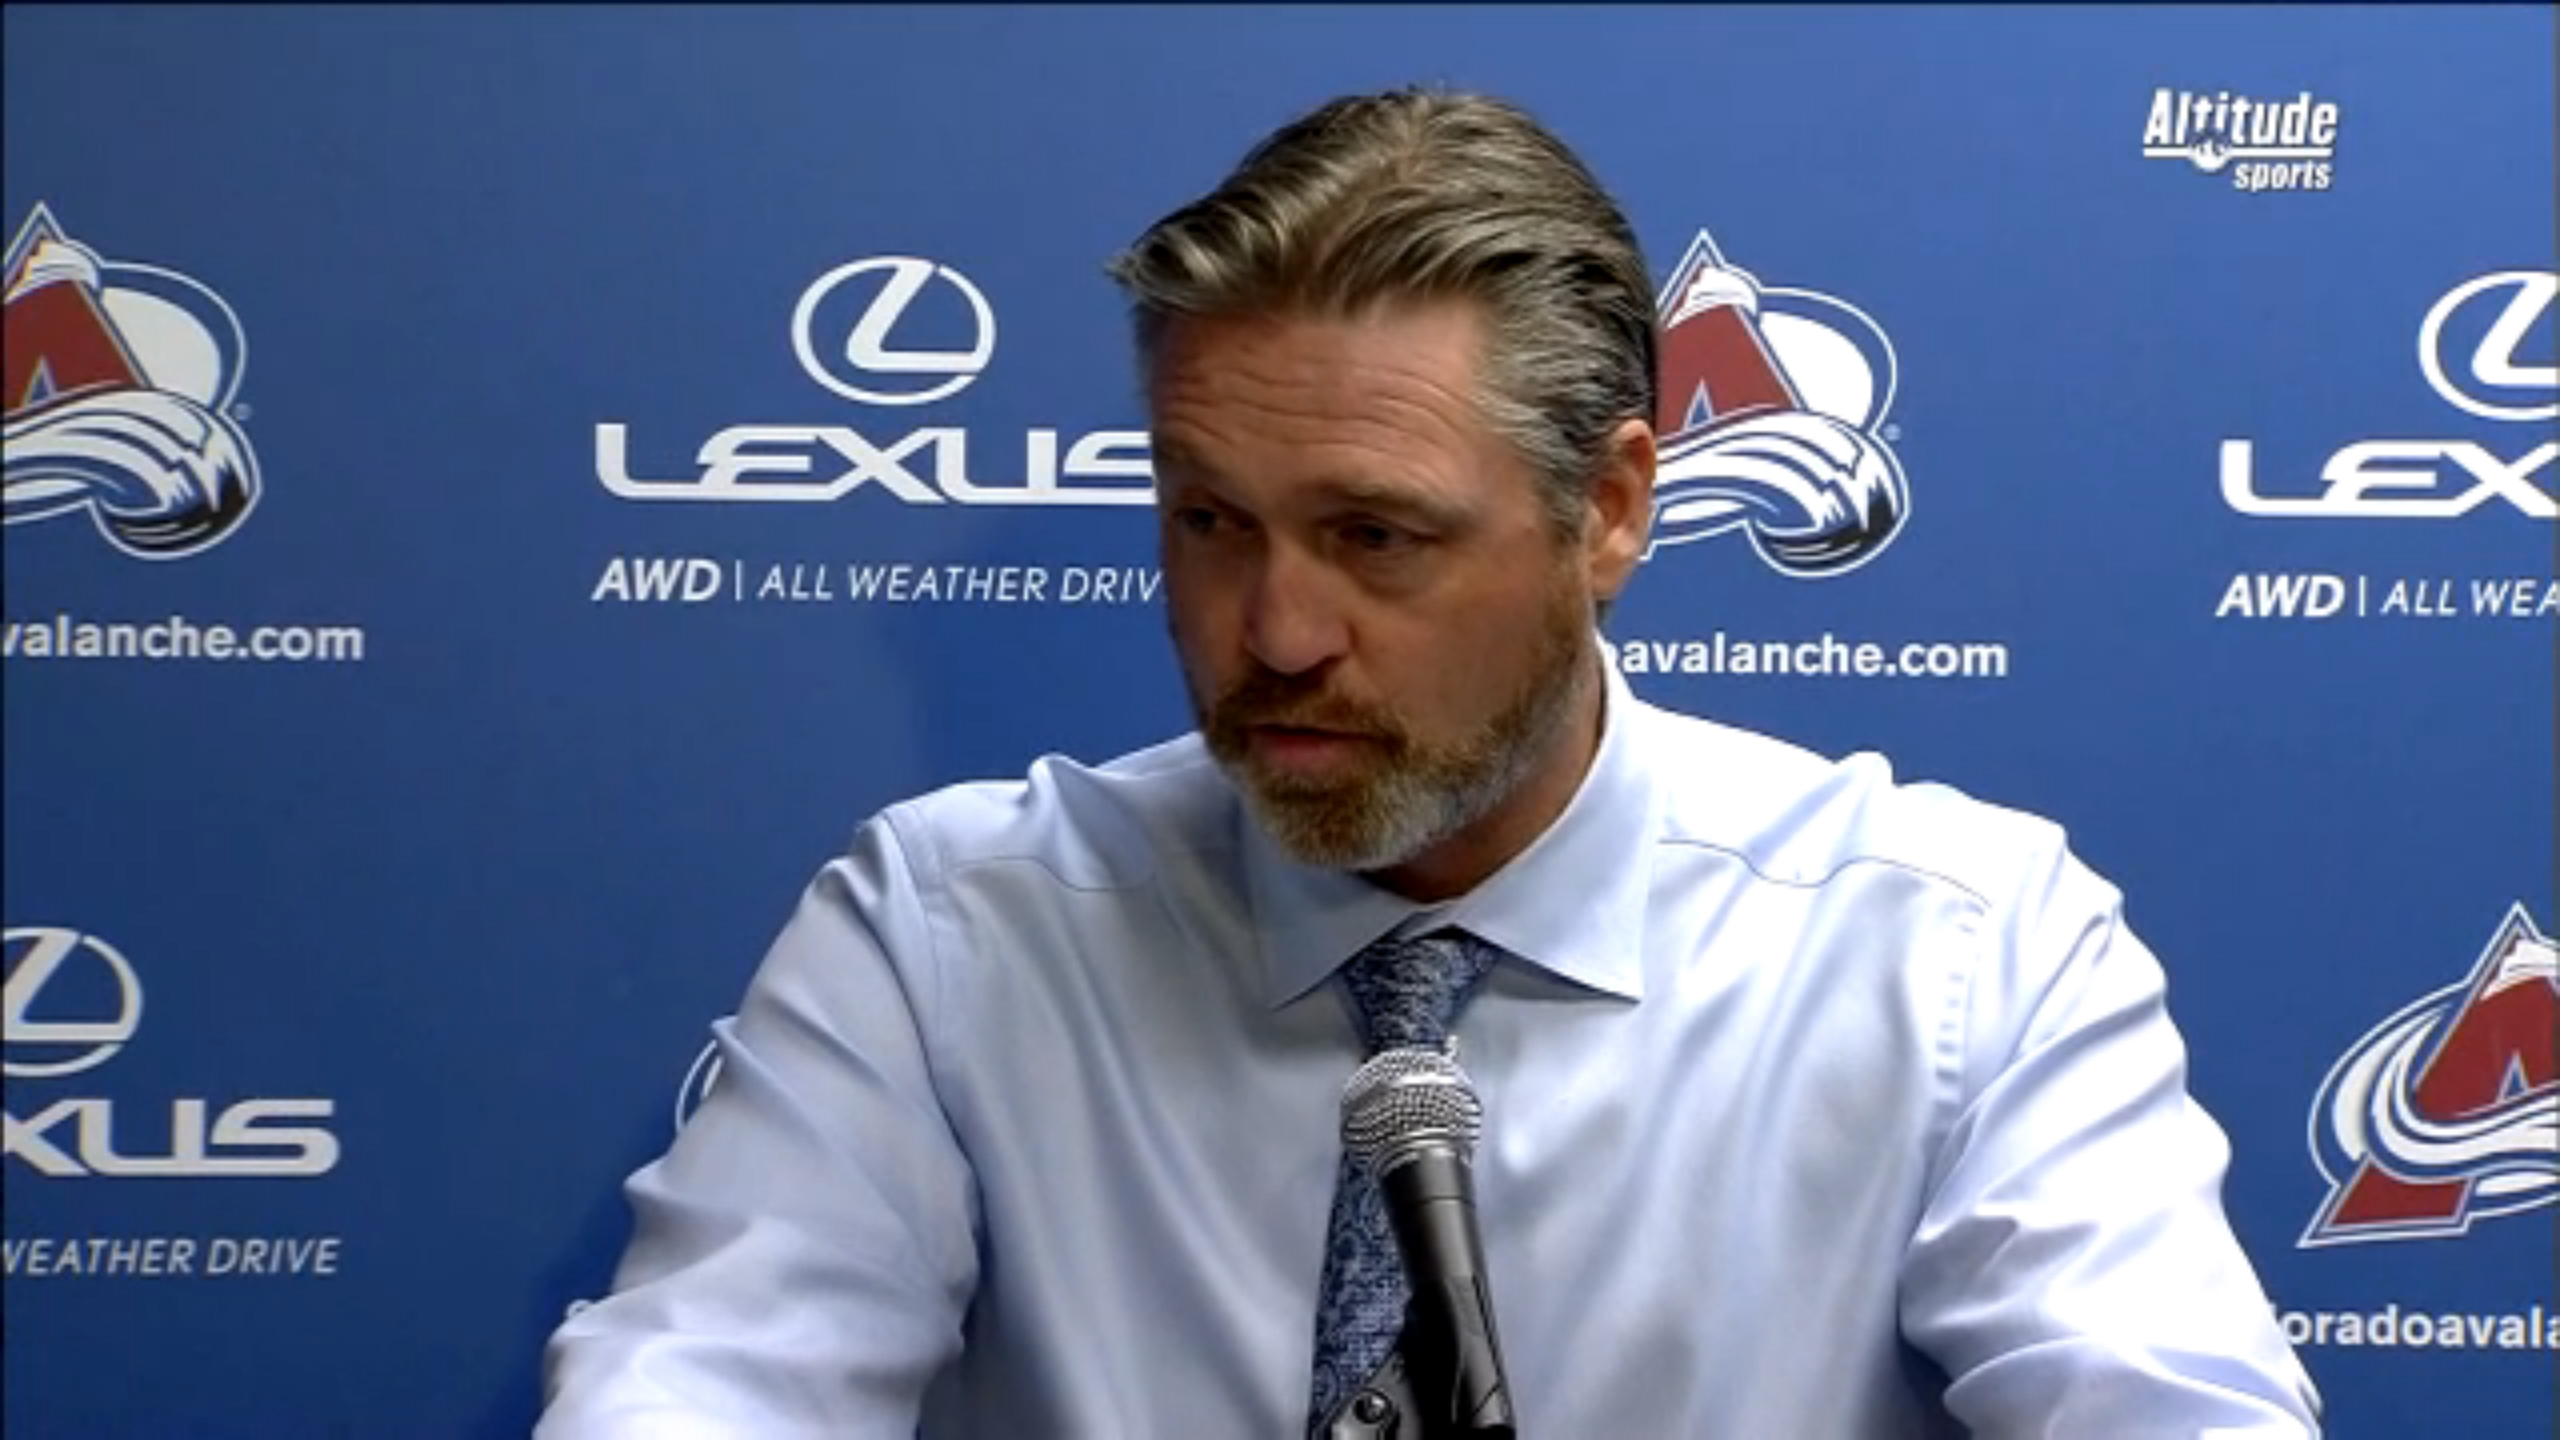 Patrick-Roy-Post-Game-040916.jpg